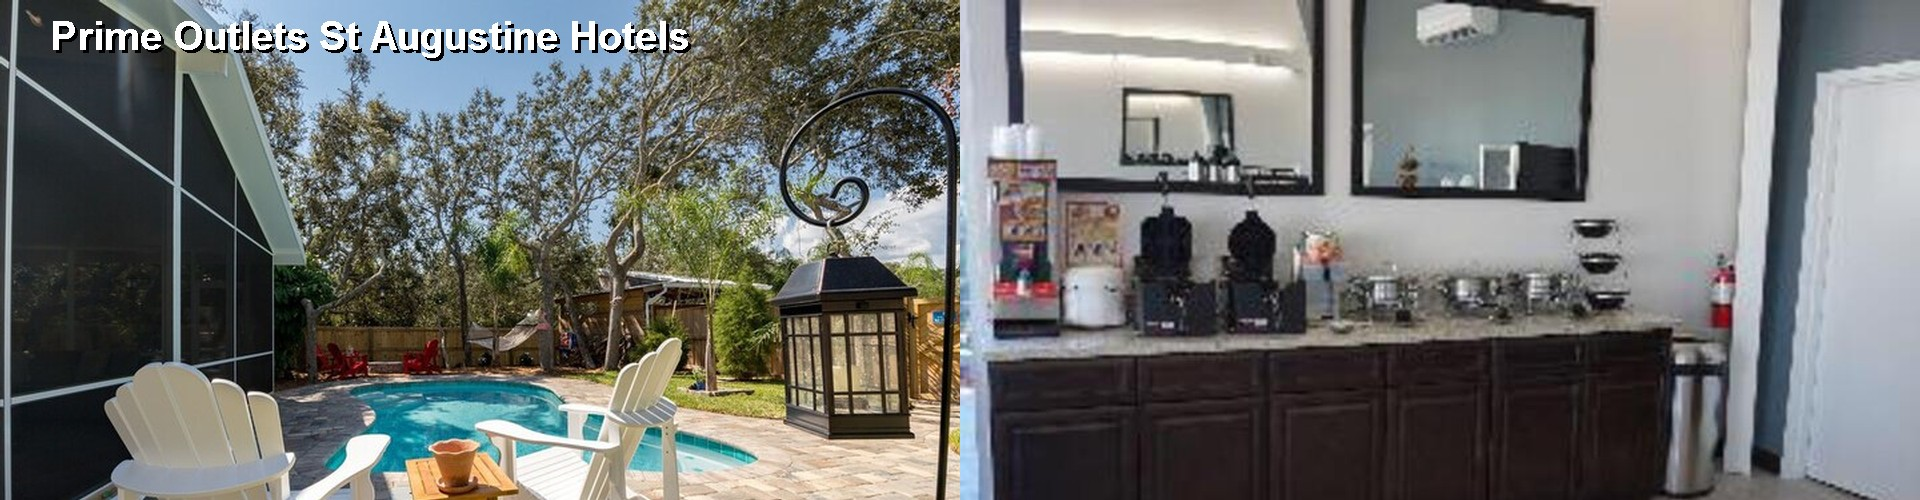 5 Best Hotels near Prime Outlets St Augustine